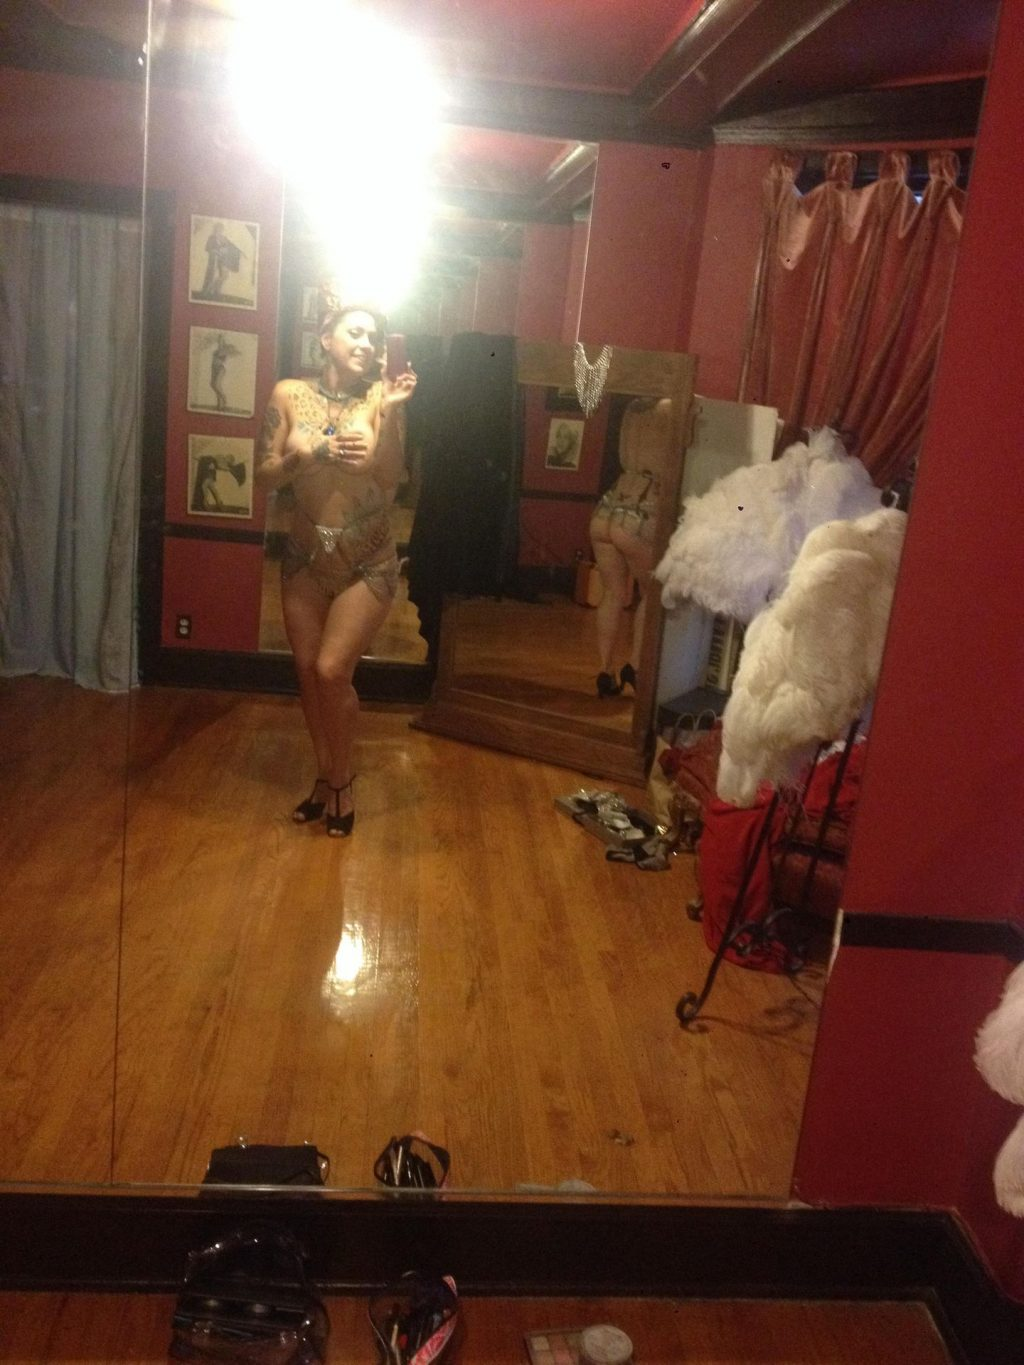 Danielle Colby Nude Leaked Fappening (69 Photos)